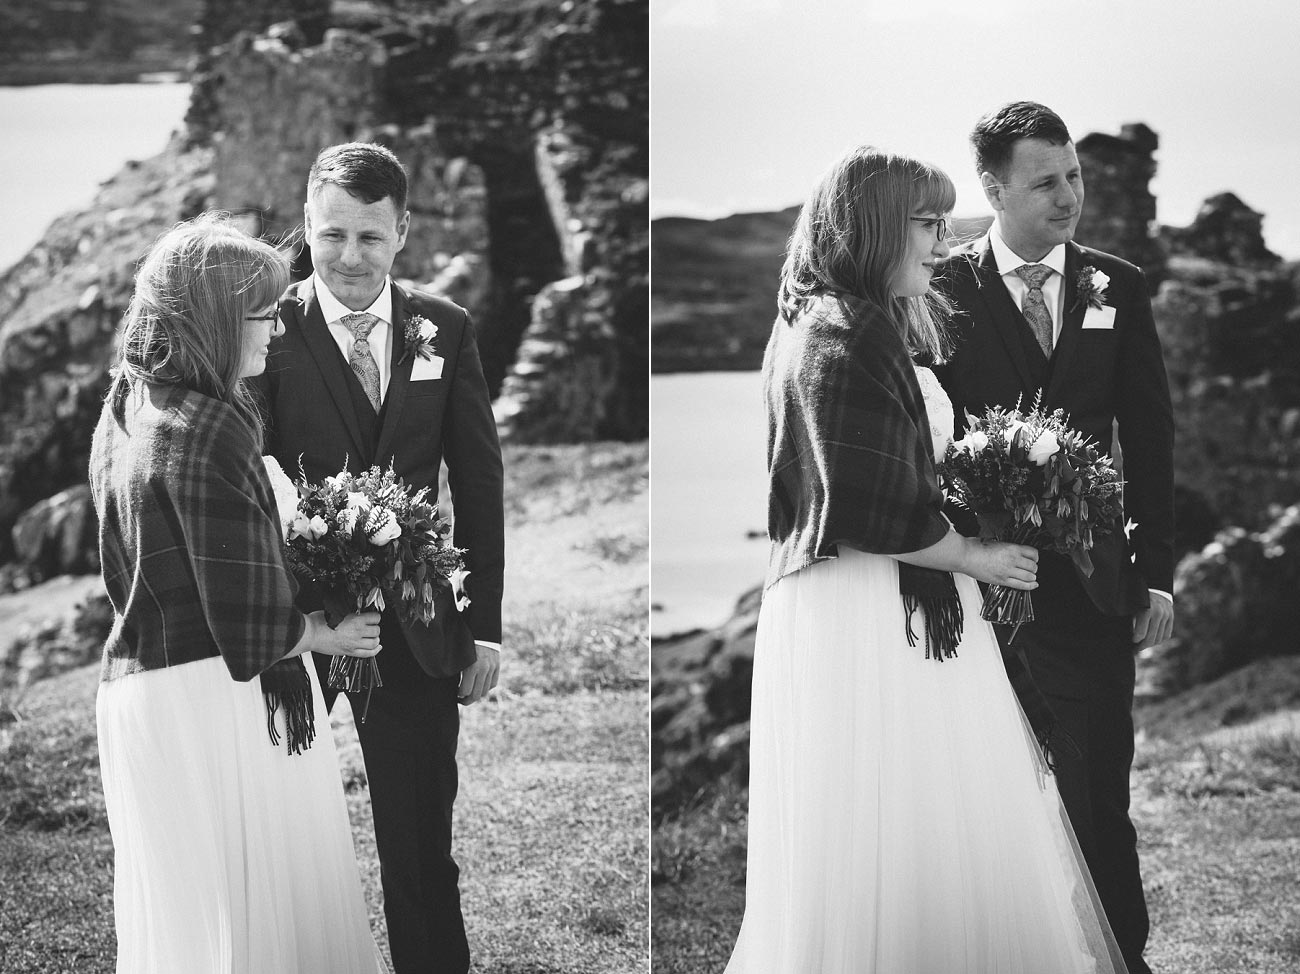 isle of skye elopement wedding photographer scotland dunscaith castle rj 0014